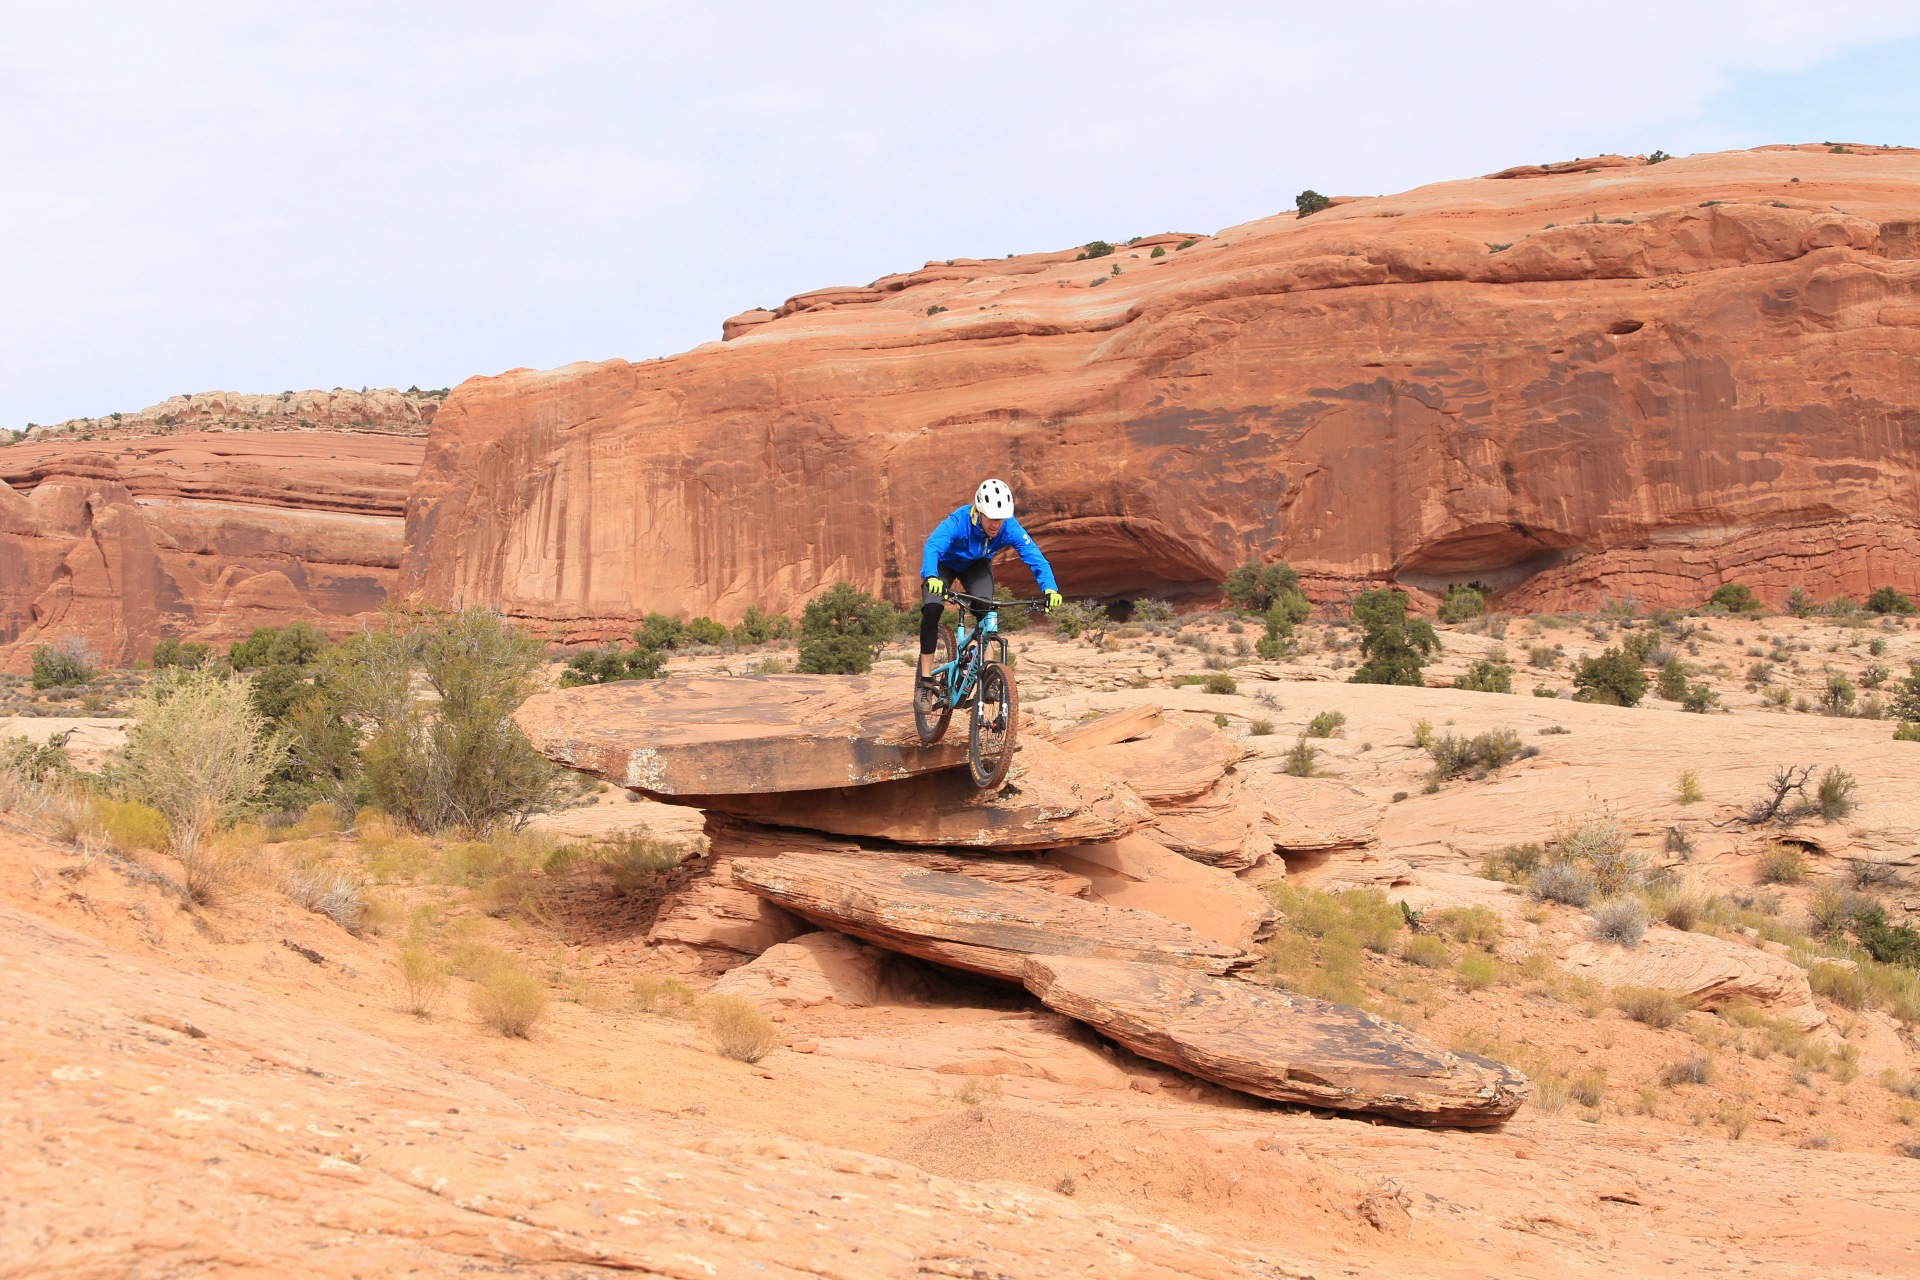 Moab - The Nomad felt right at home on the bigger terrain, high-speed lines, technical drops.